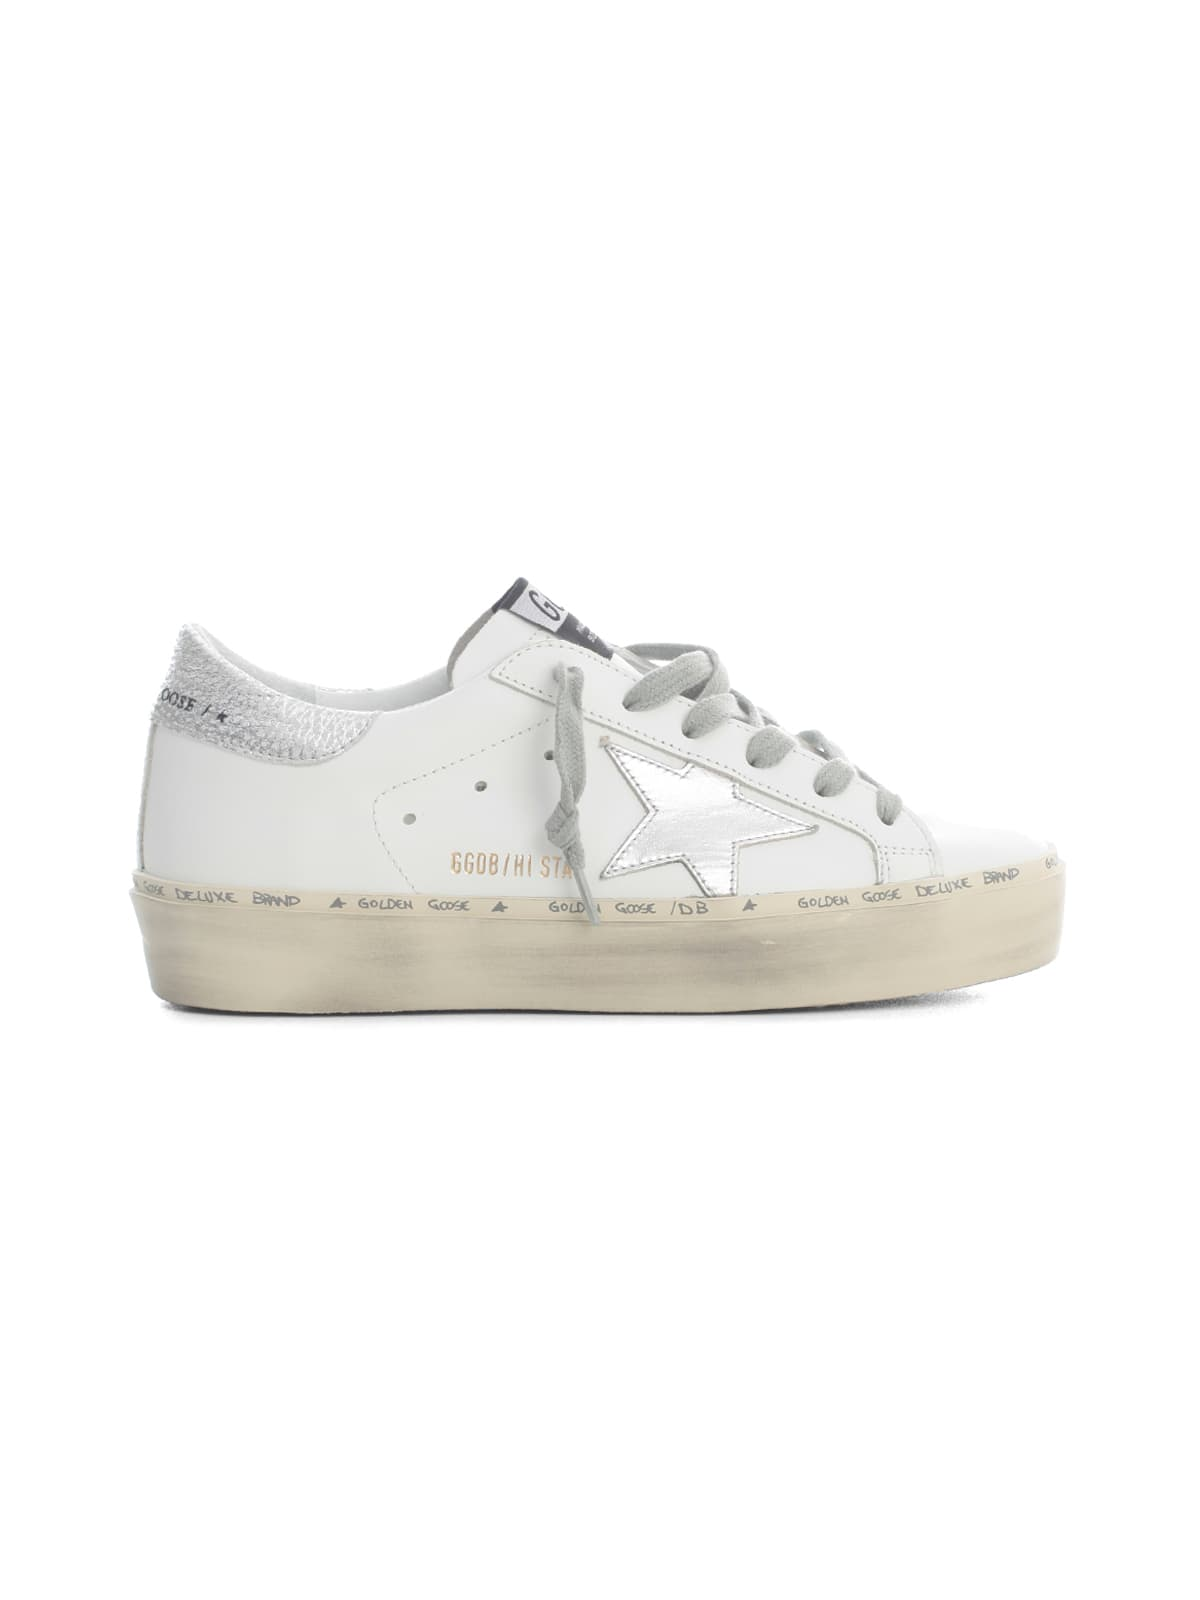 Golden Goose Leathers HI STAR LEATHER UPPER LAMINATED STAR AND HEEL